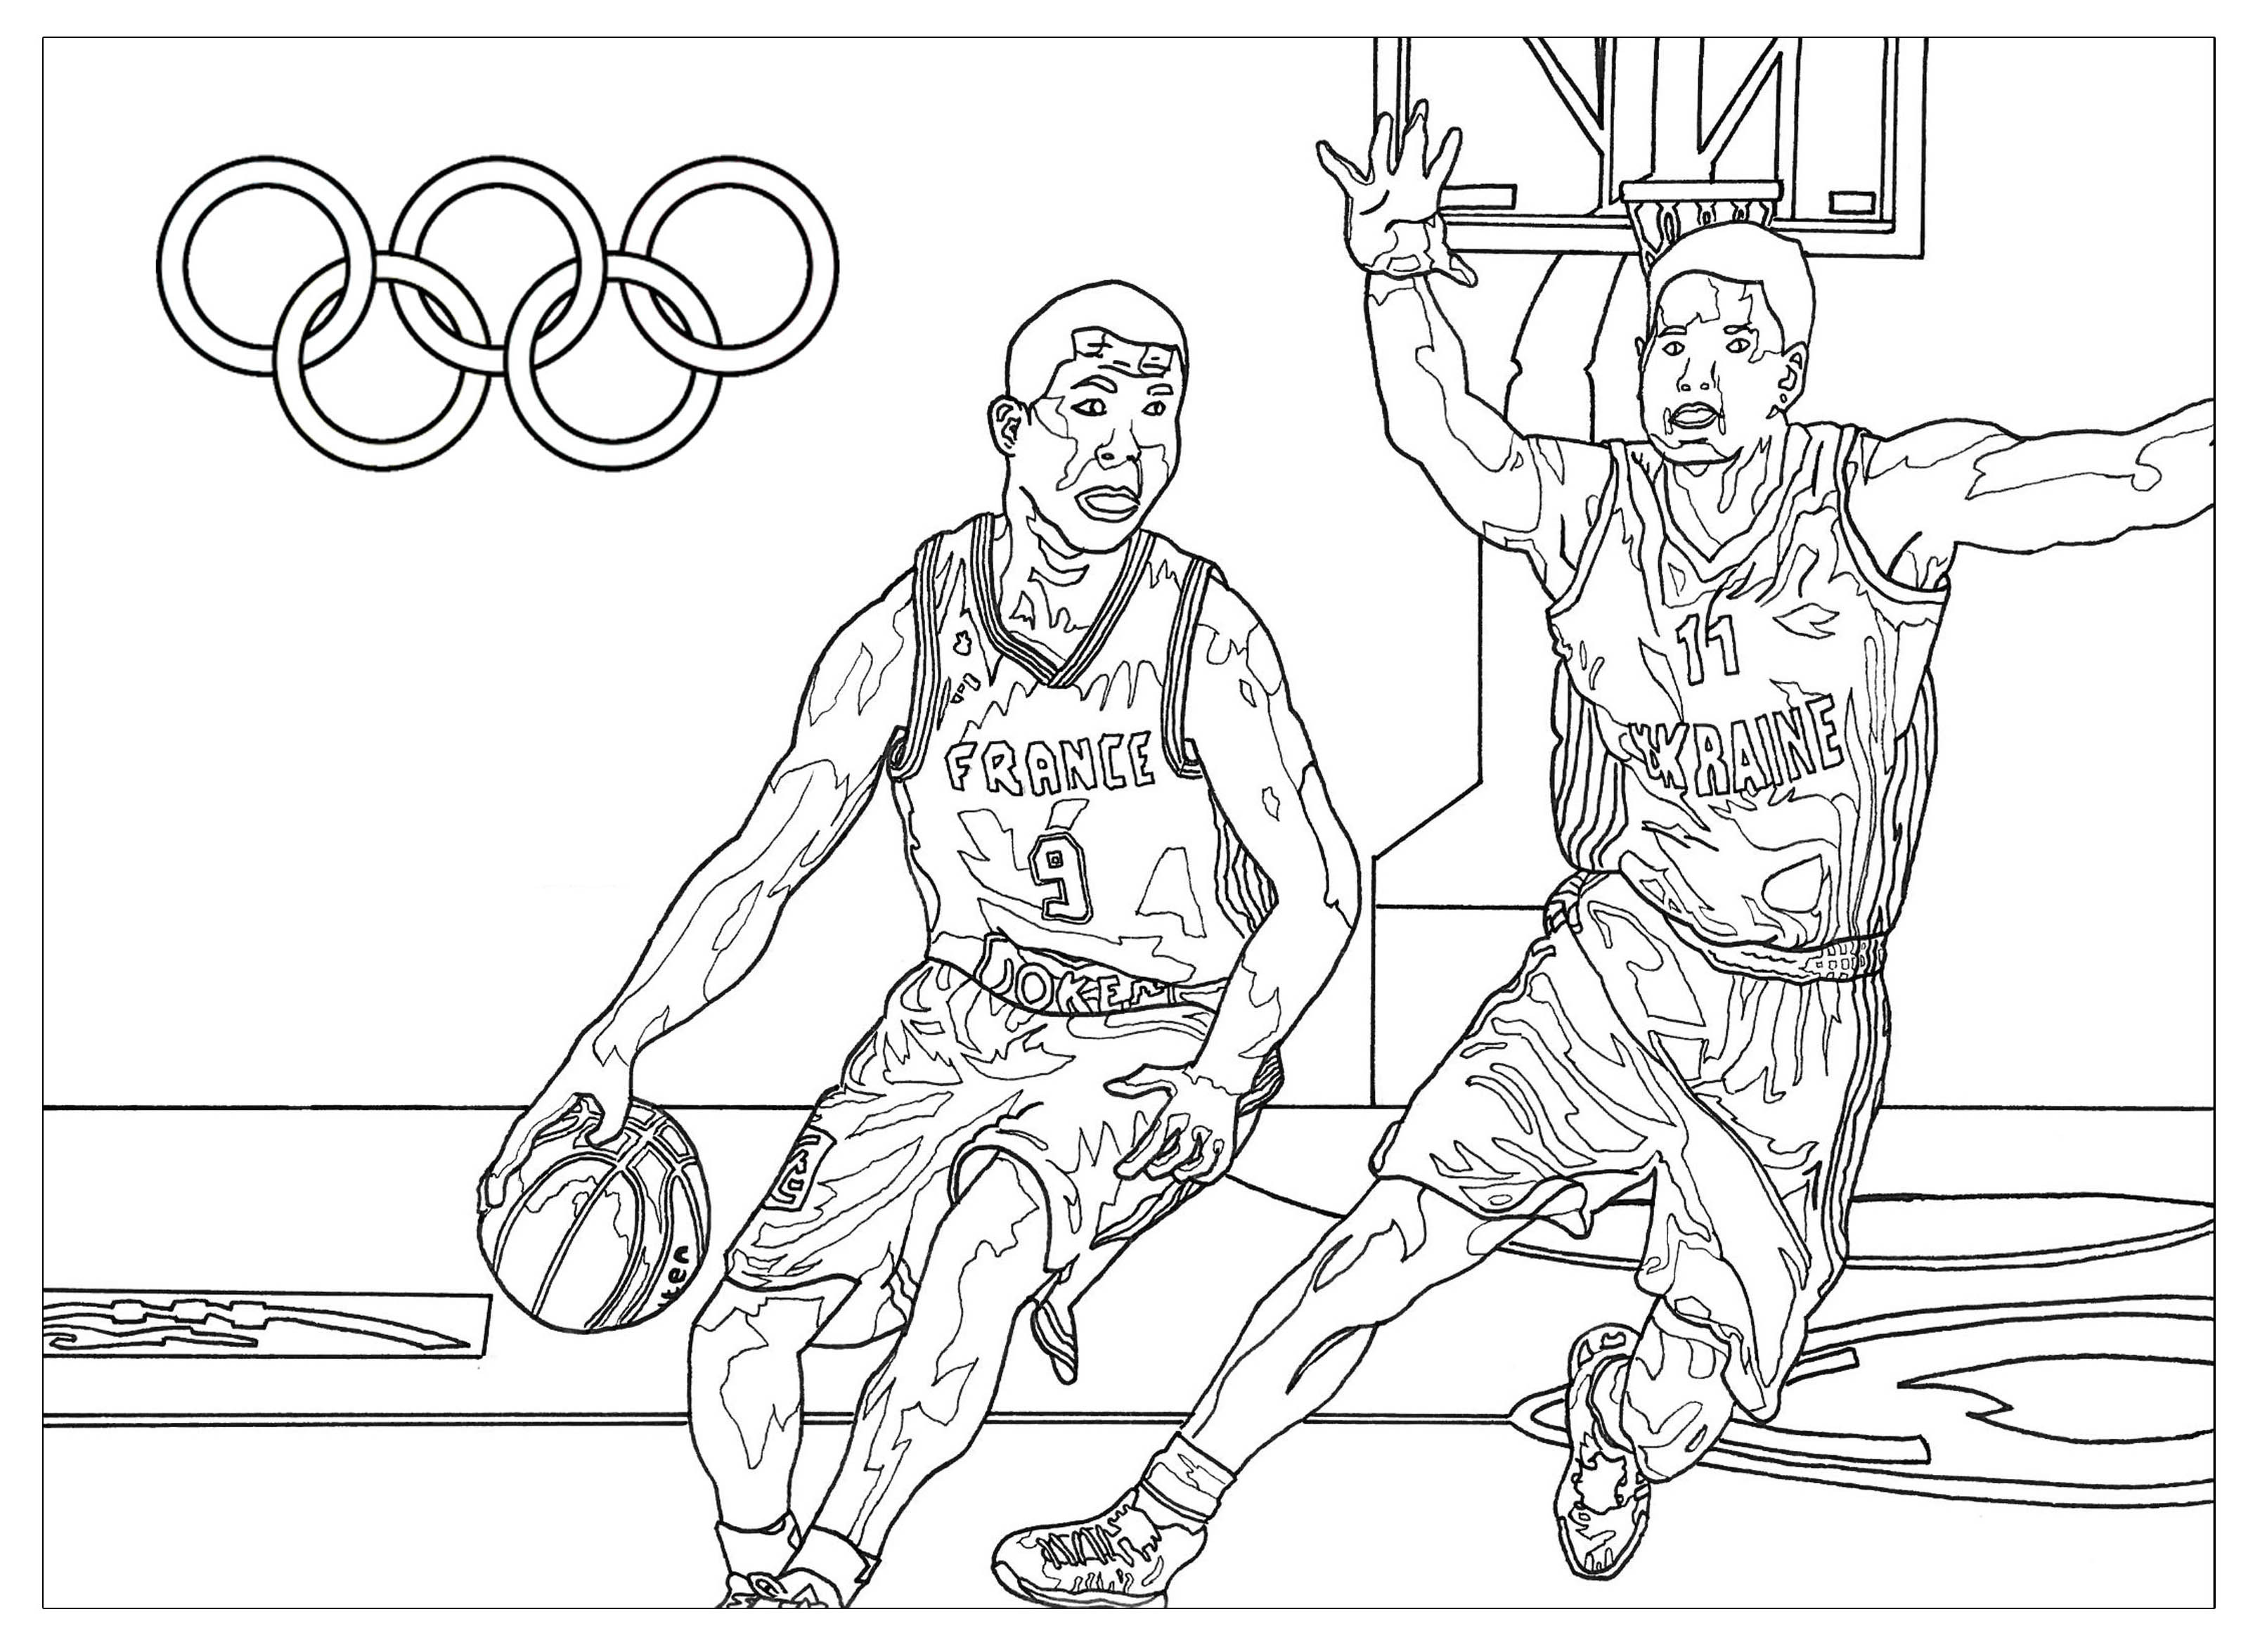 Olympic games : Basketball